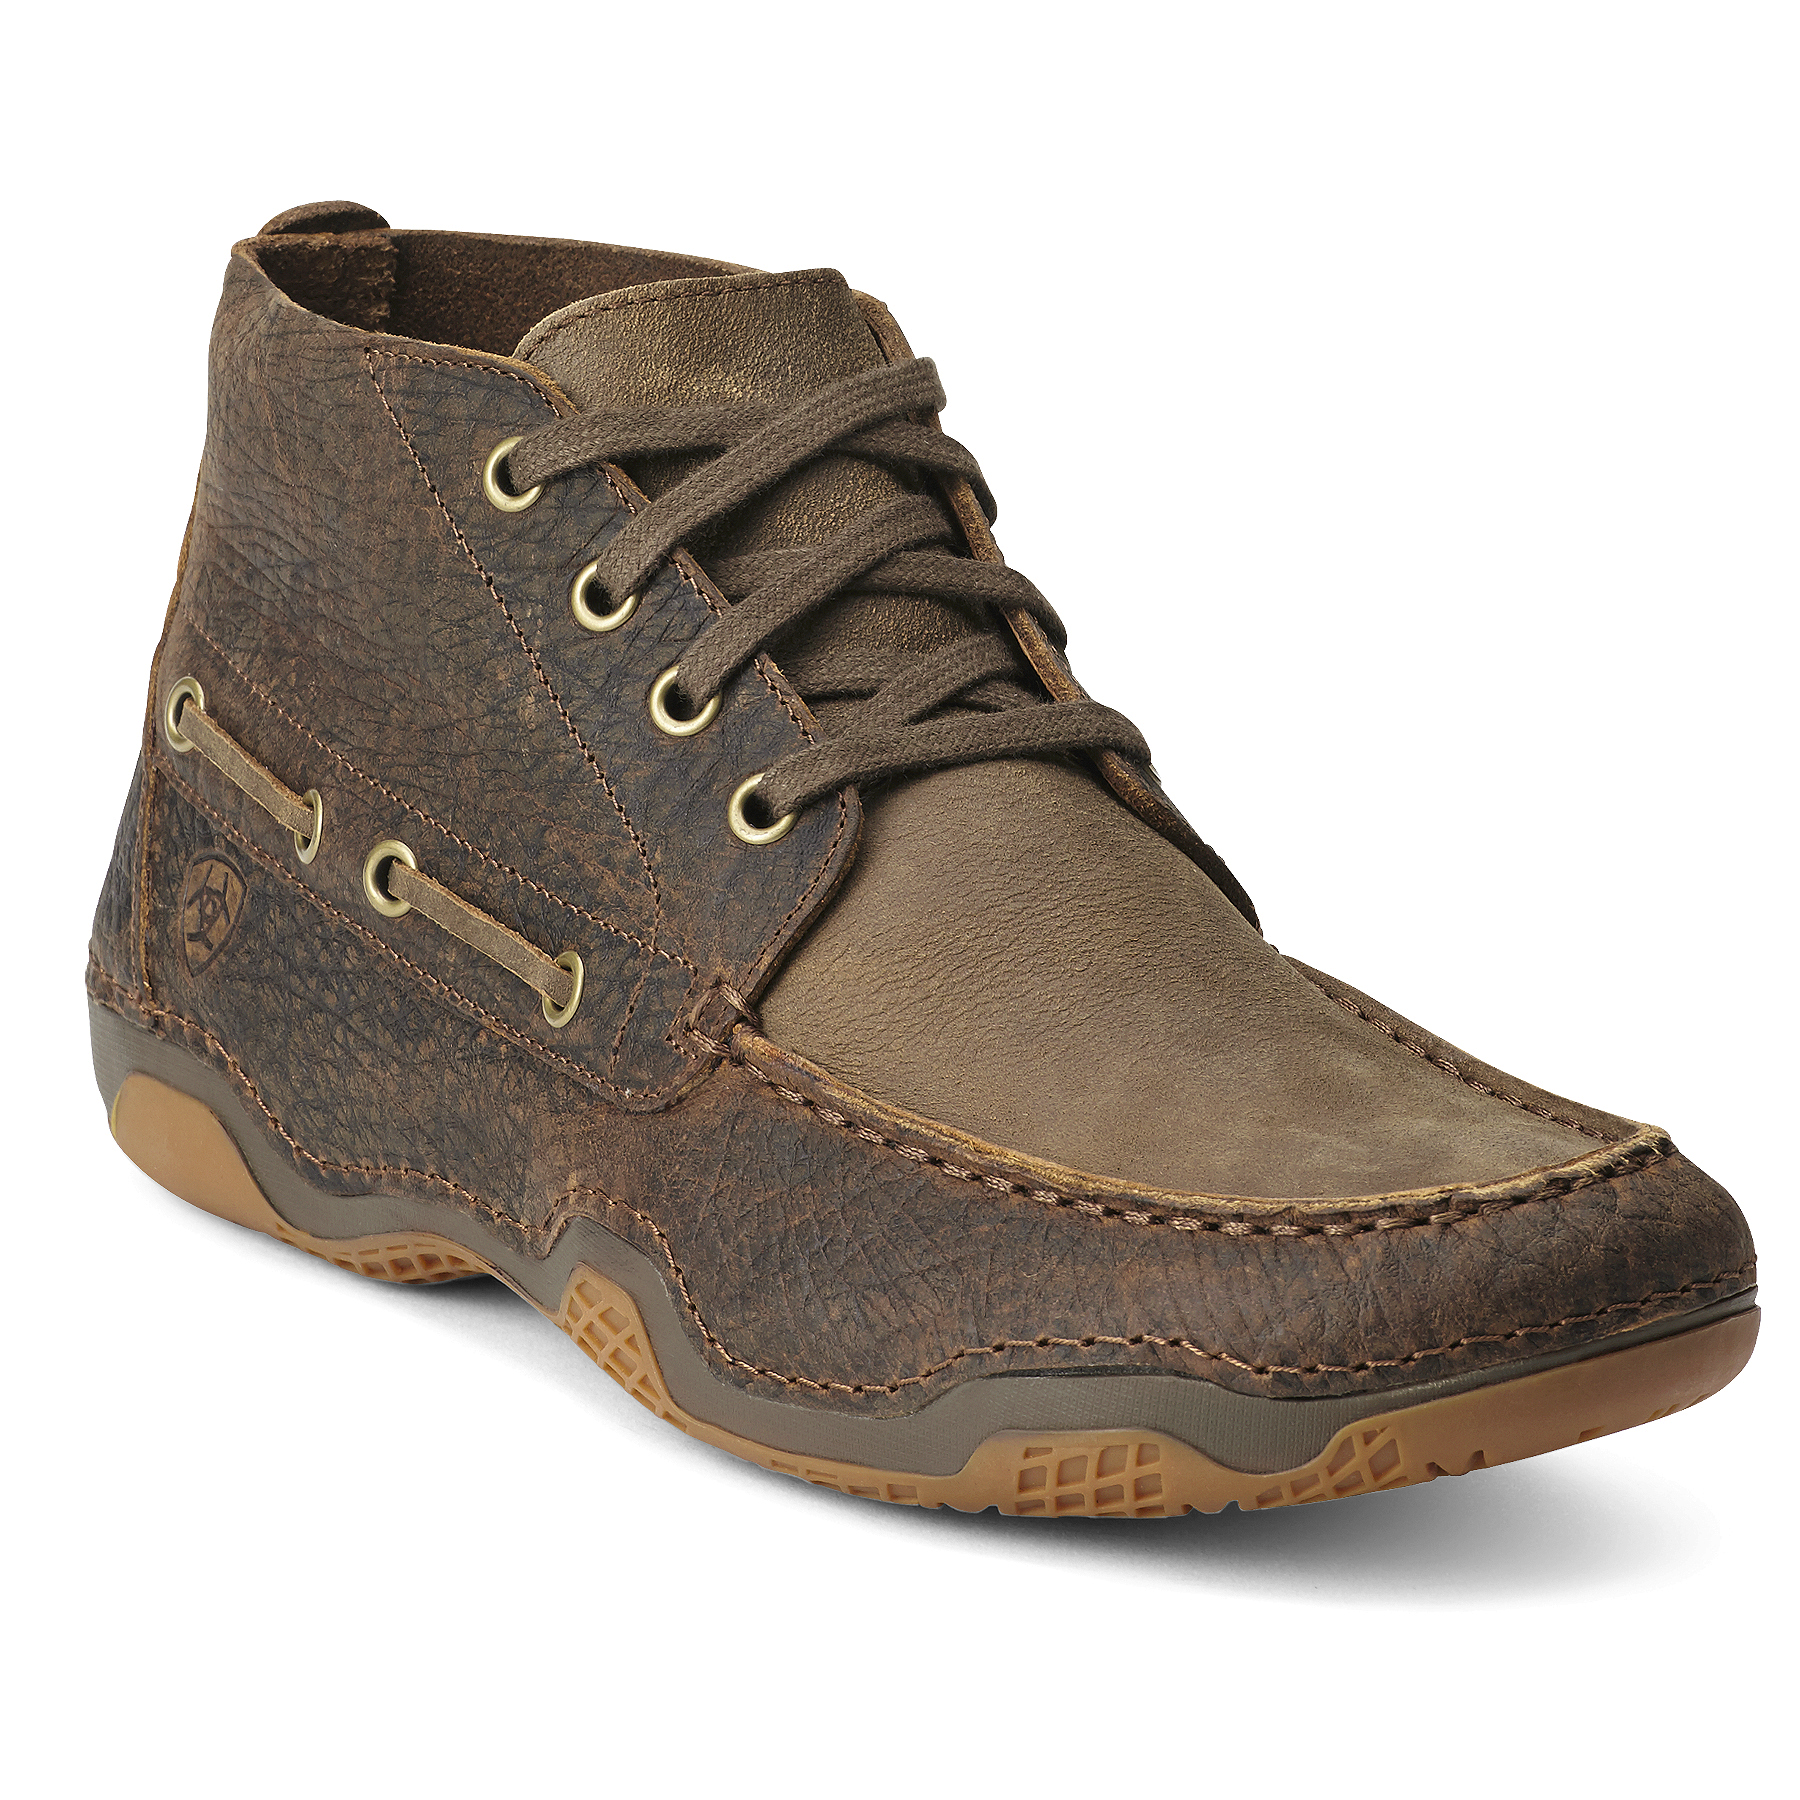 Ariat Holbrook Lace-Up Shoe